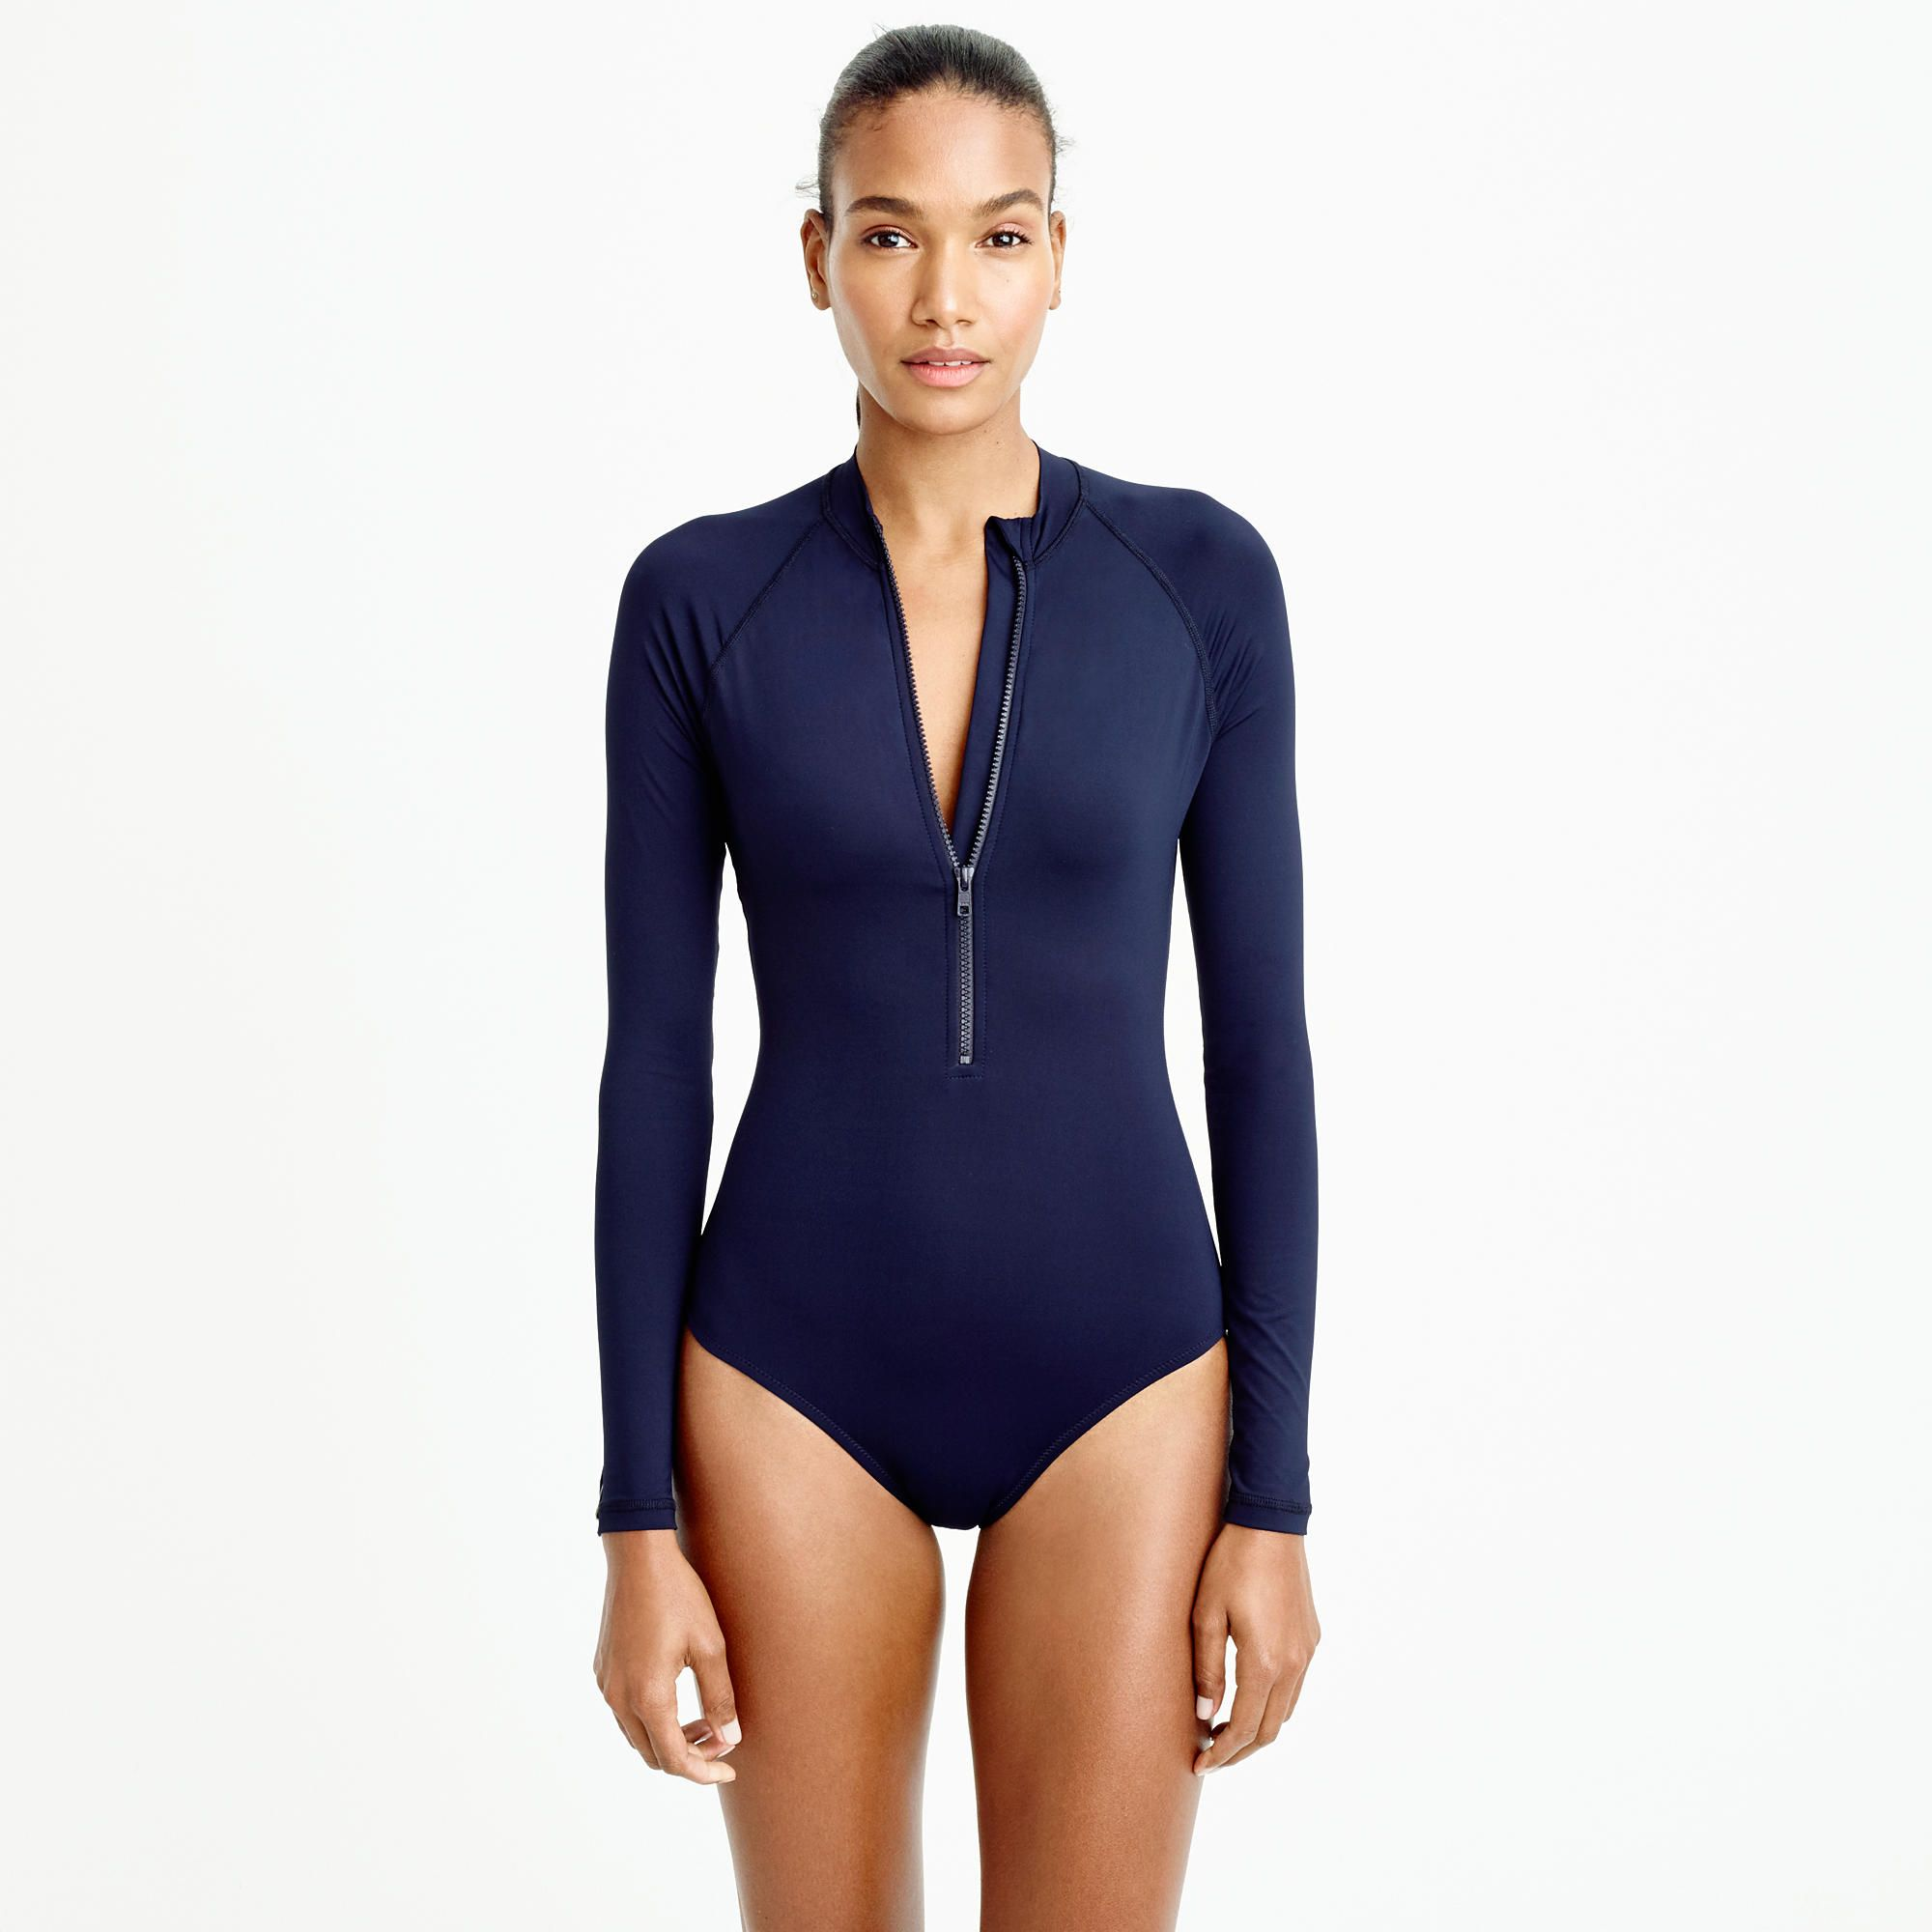 Zip-up long-sleeve swimsuit | T- s. h. i .r. t ...